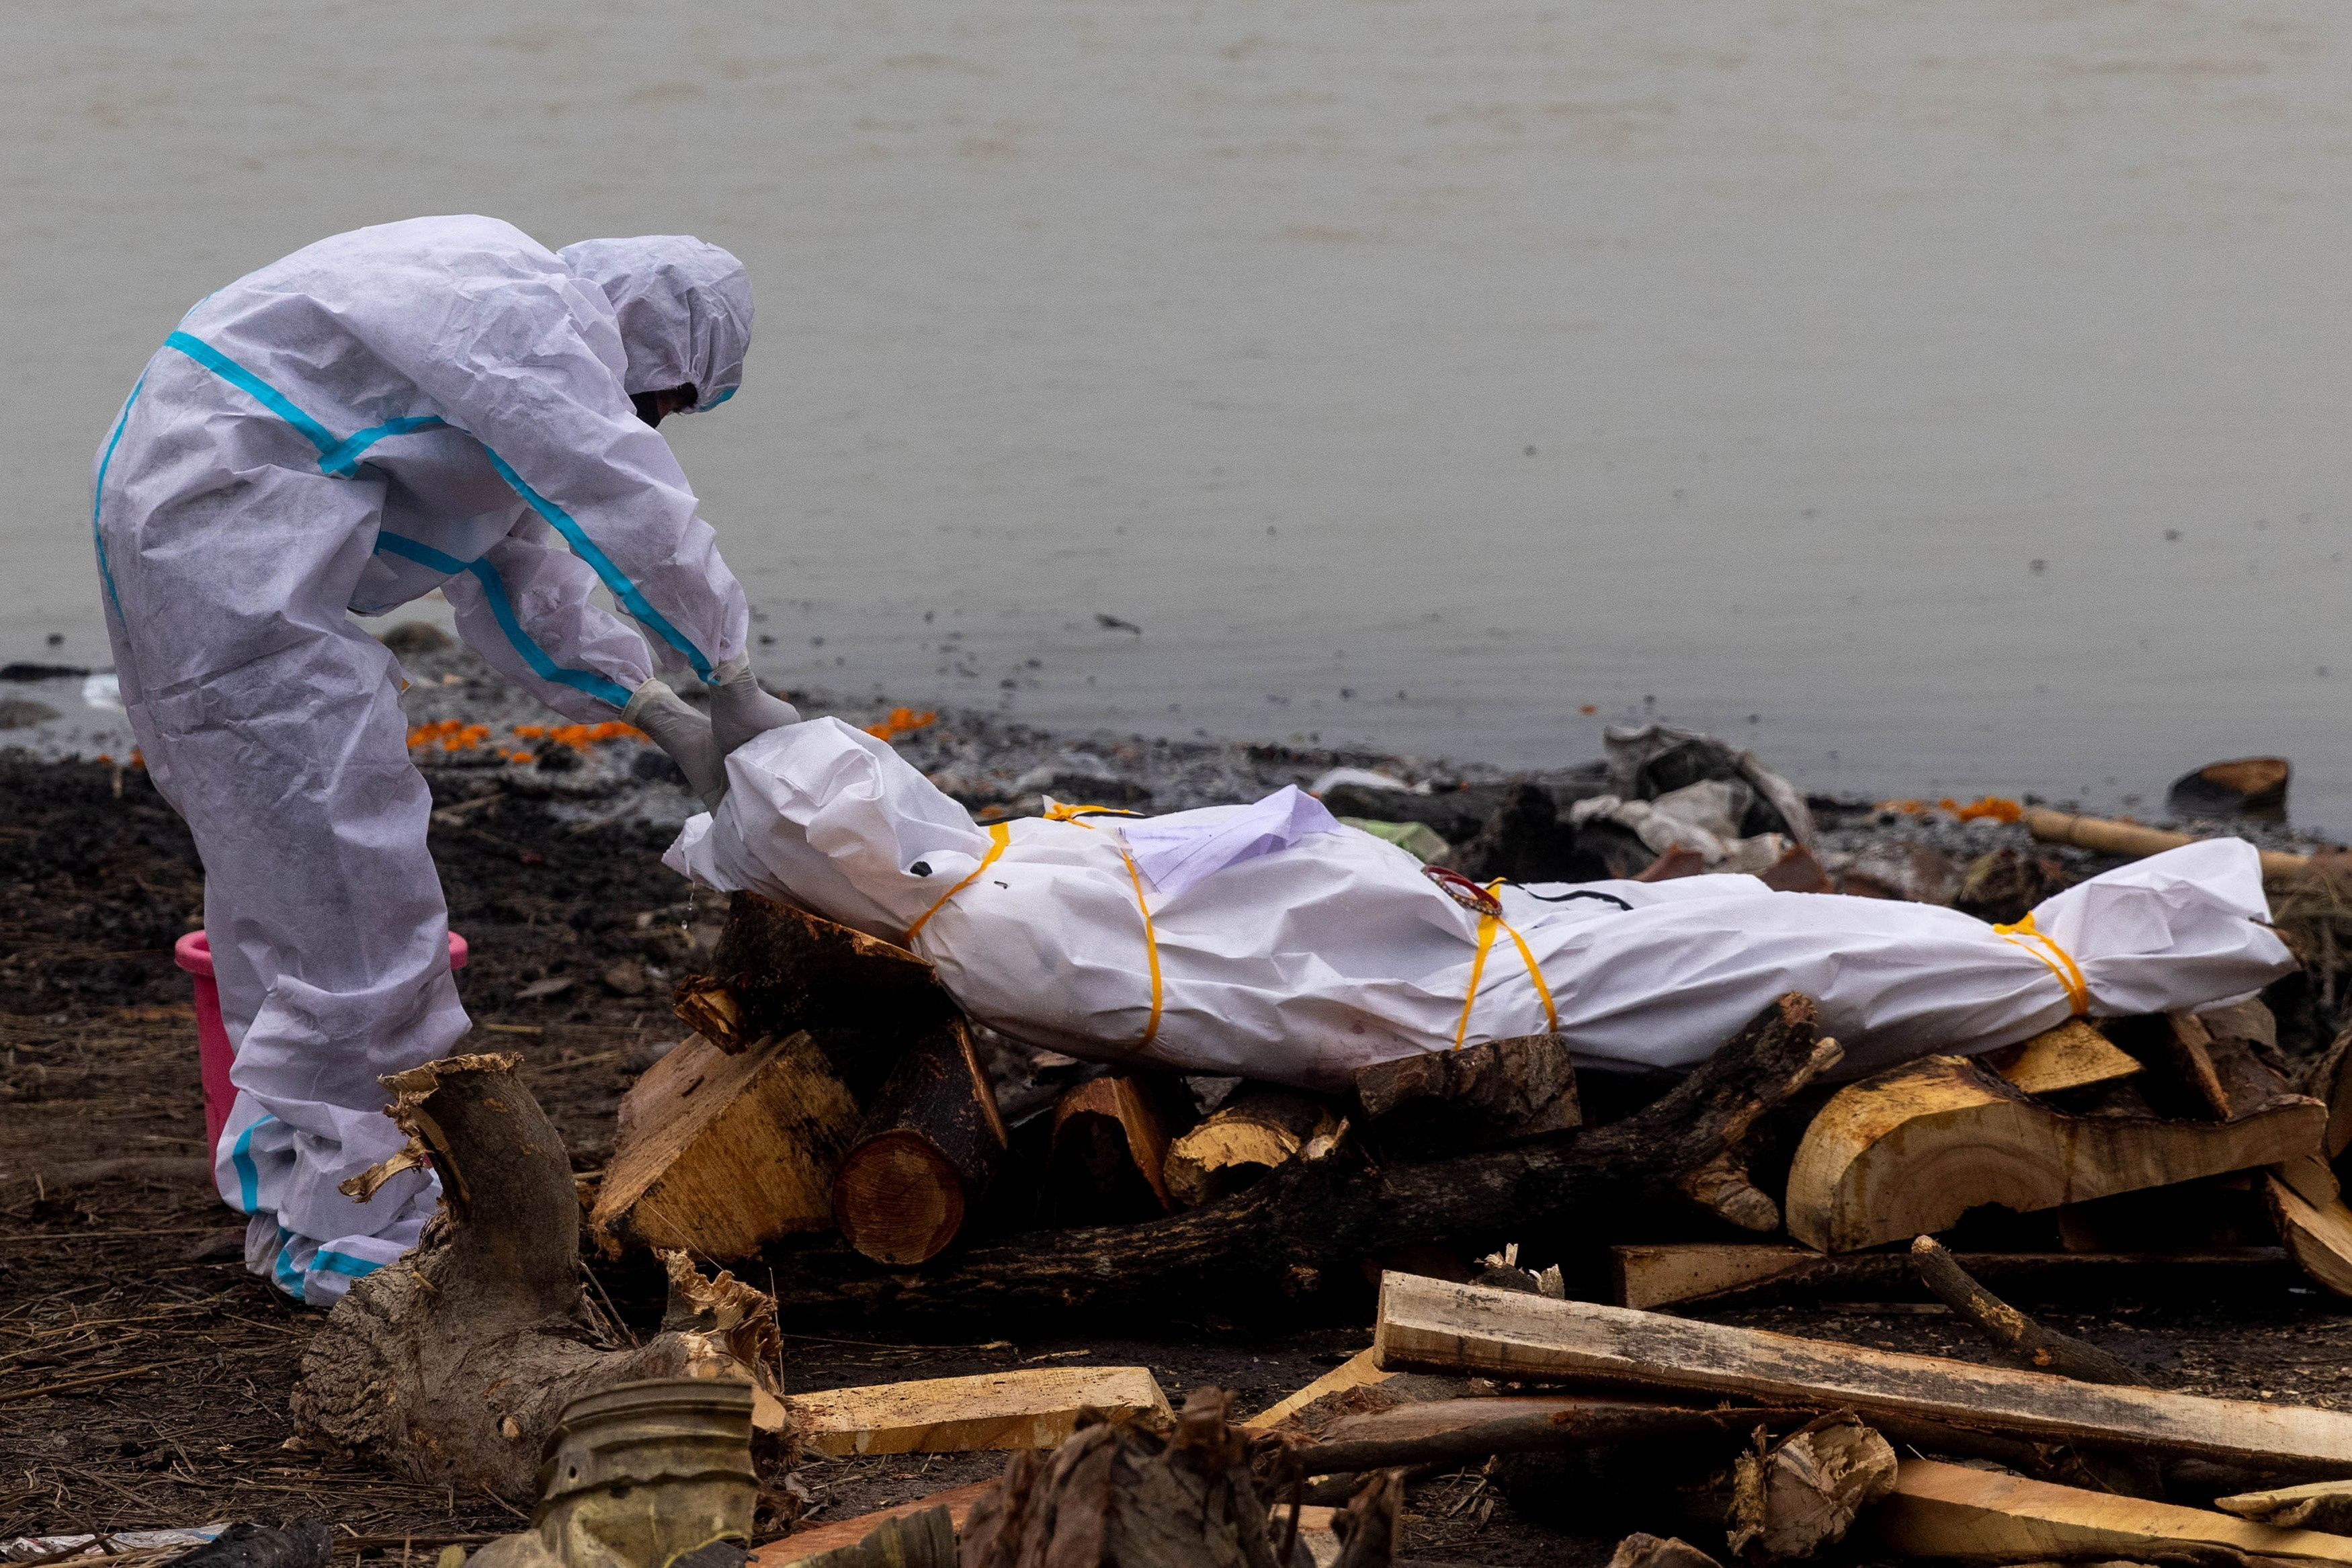 Bodies of COVID-19 victims among those dumped in India's Ganges -govt  document | Reuters